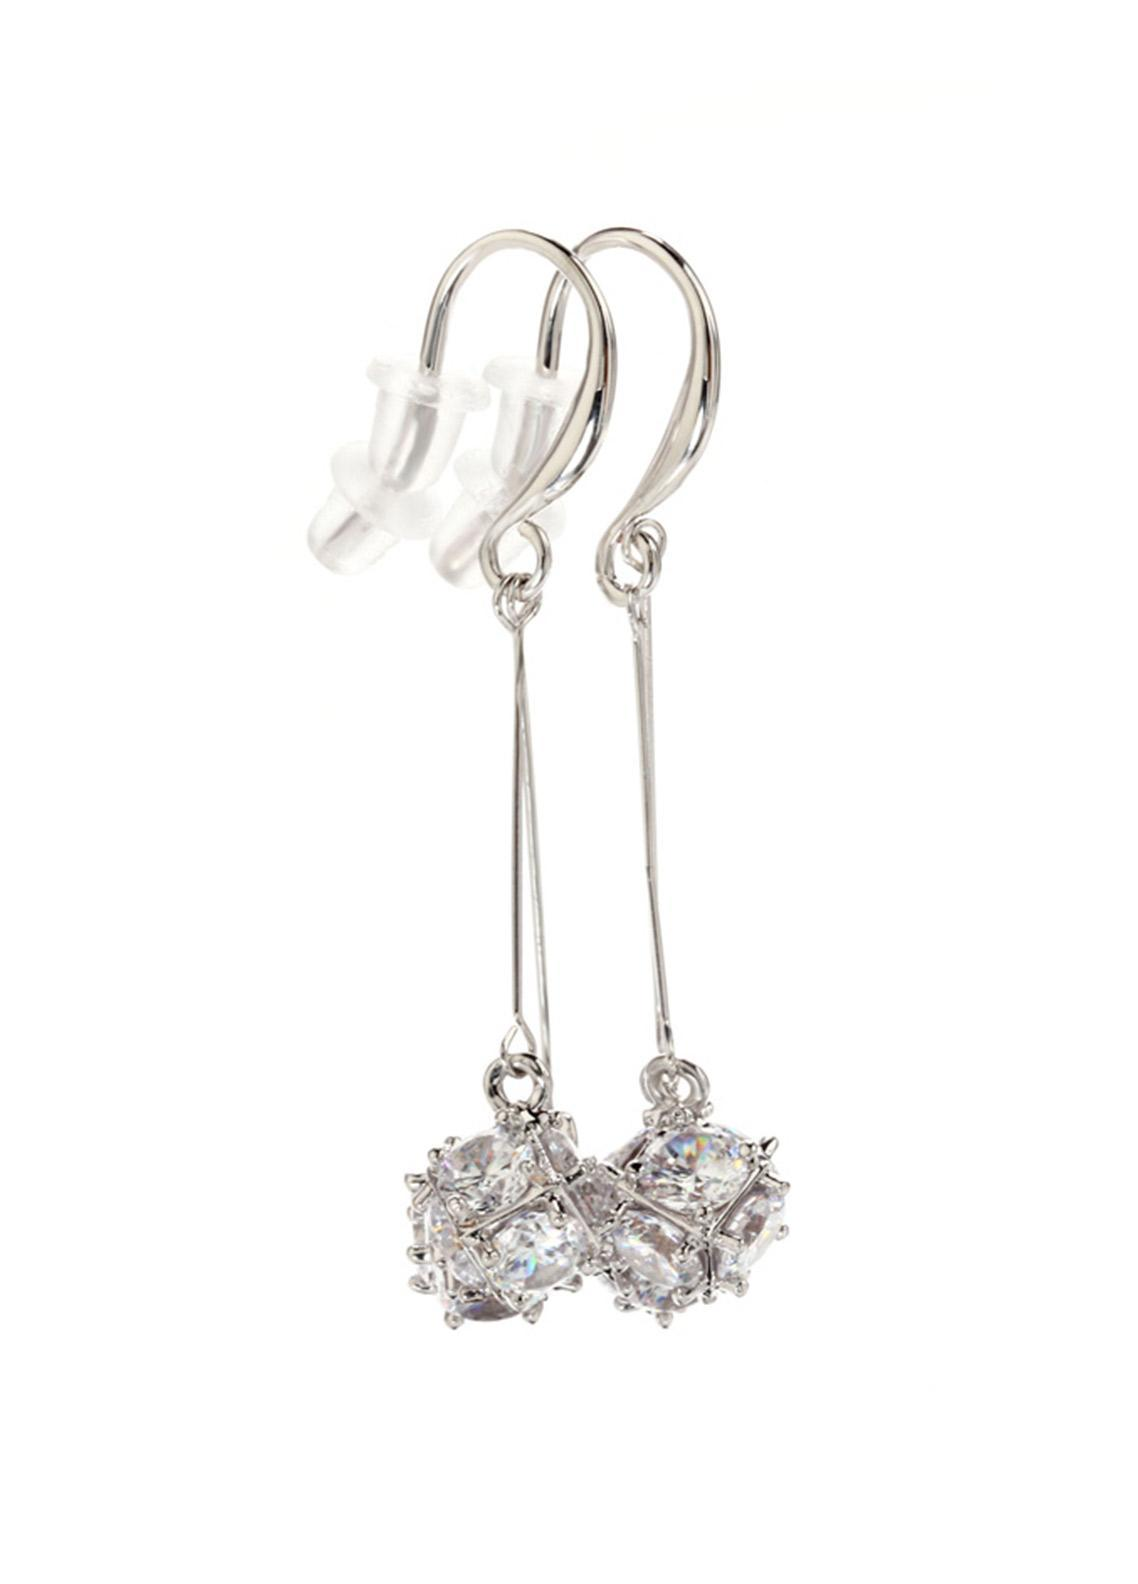 Anna Grace London by Silk Avenue Silver Crystal Sparkling Square Drop Earring AGE0027 - Ladies Jewellery